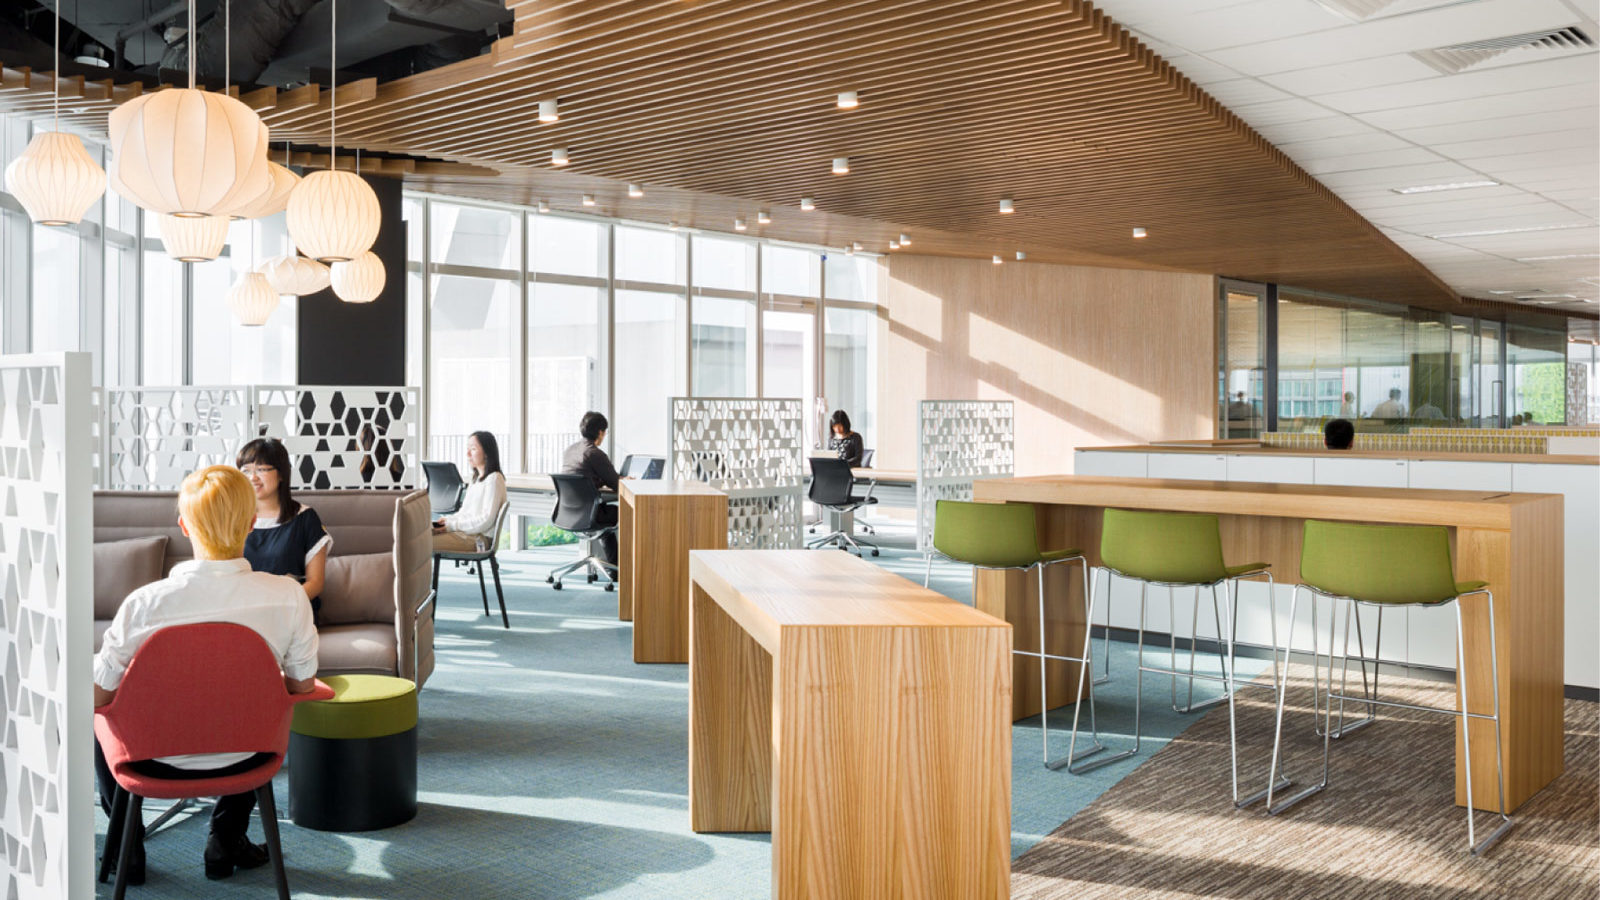 co-working space by Merx